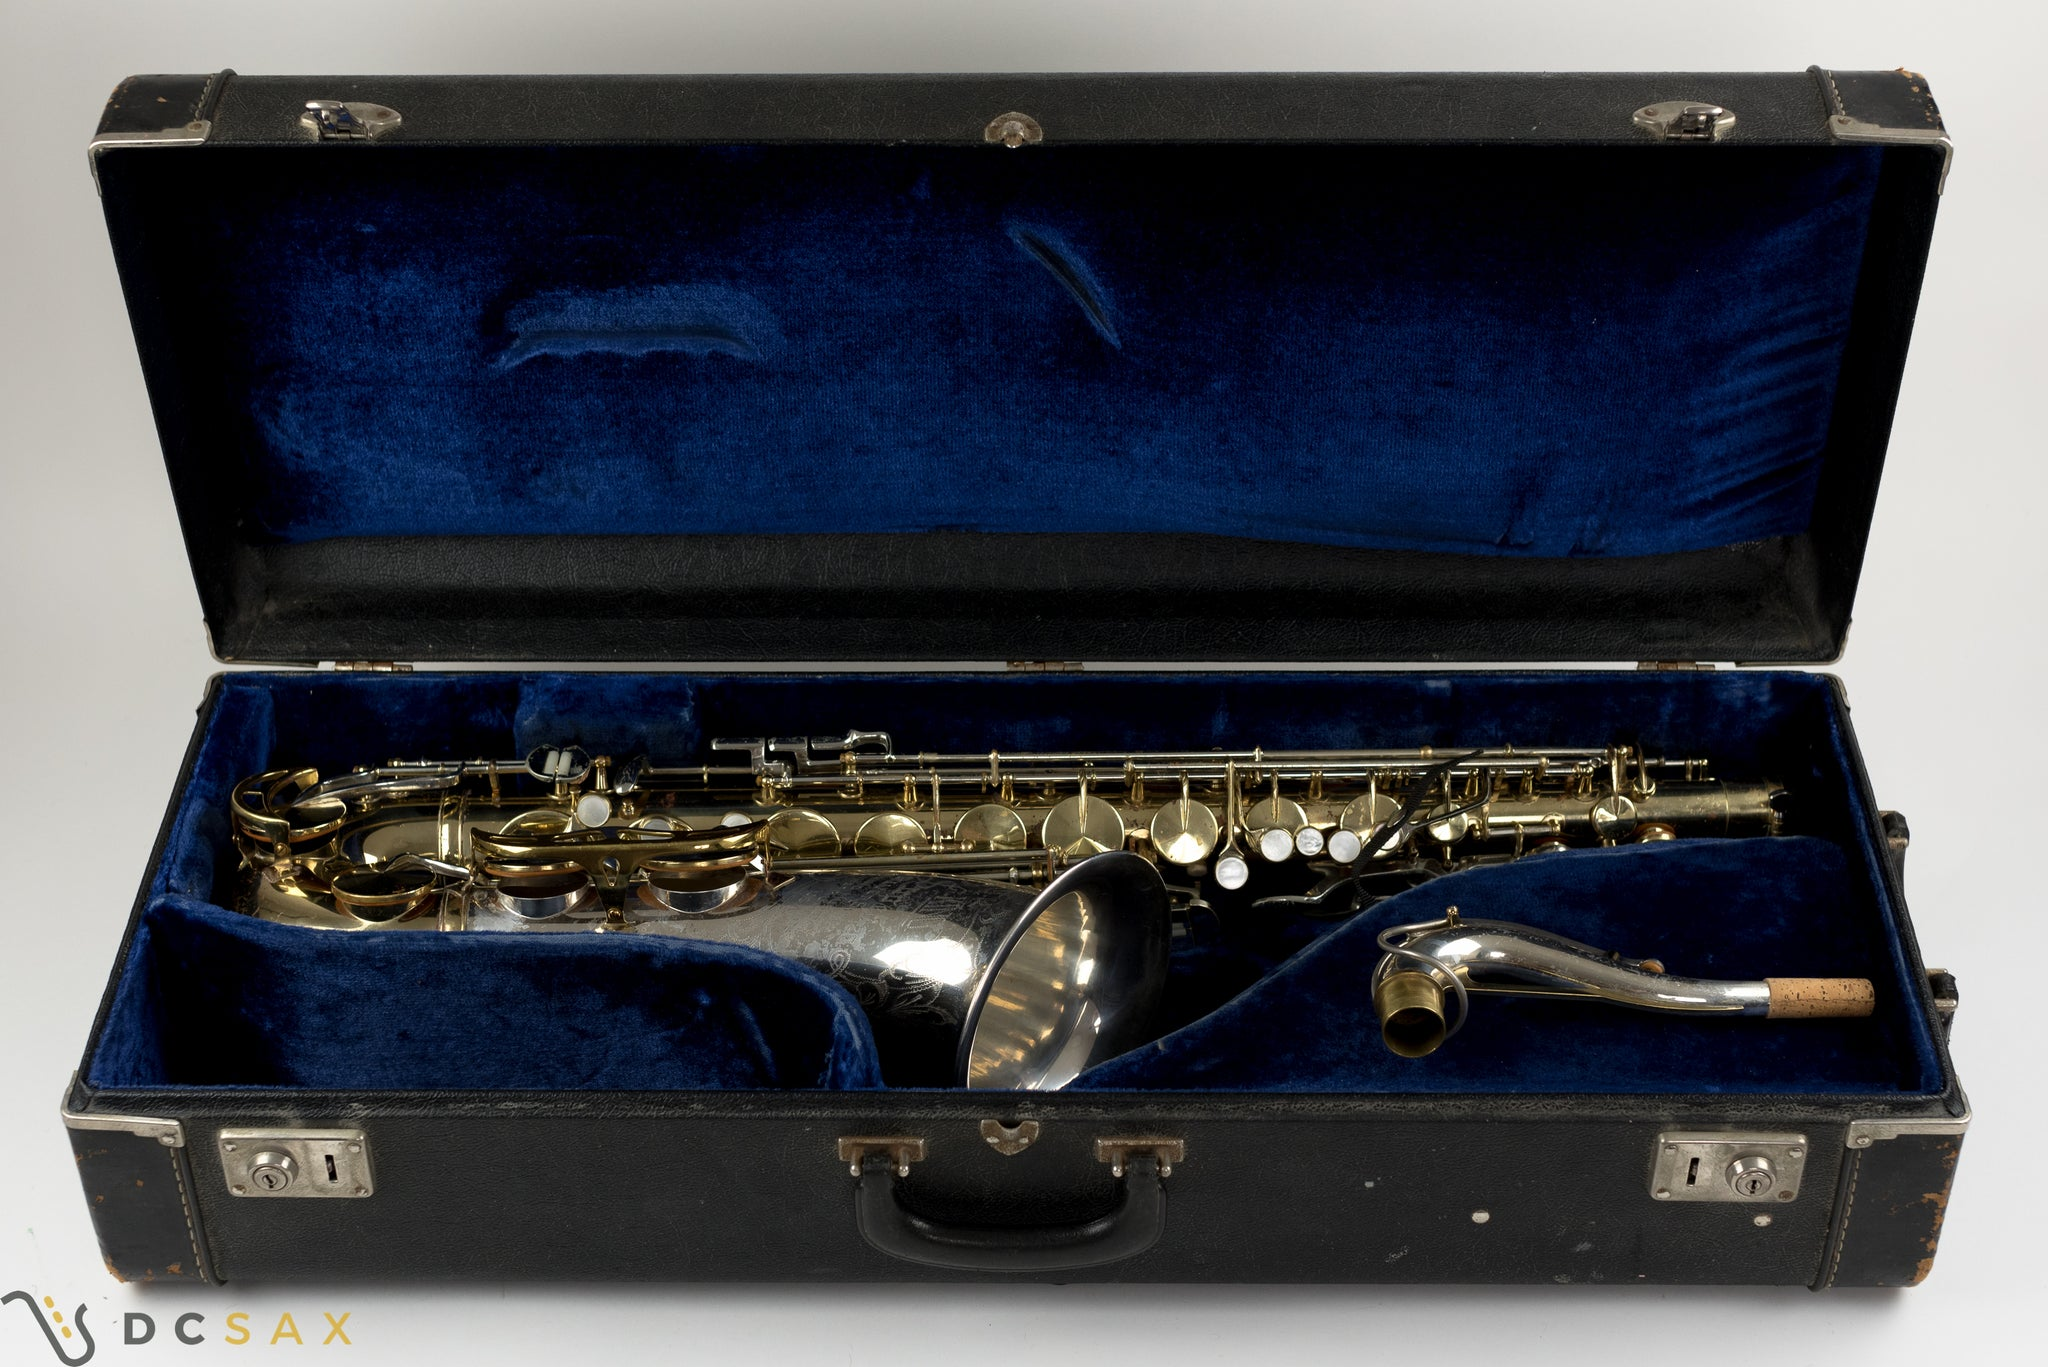 King Super 20 Tenor Saxophone, Silver Sonic, Just Serviced, Video